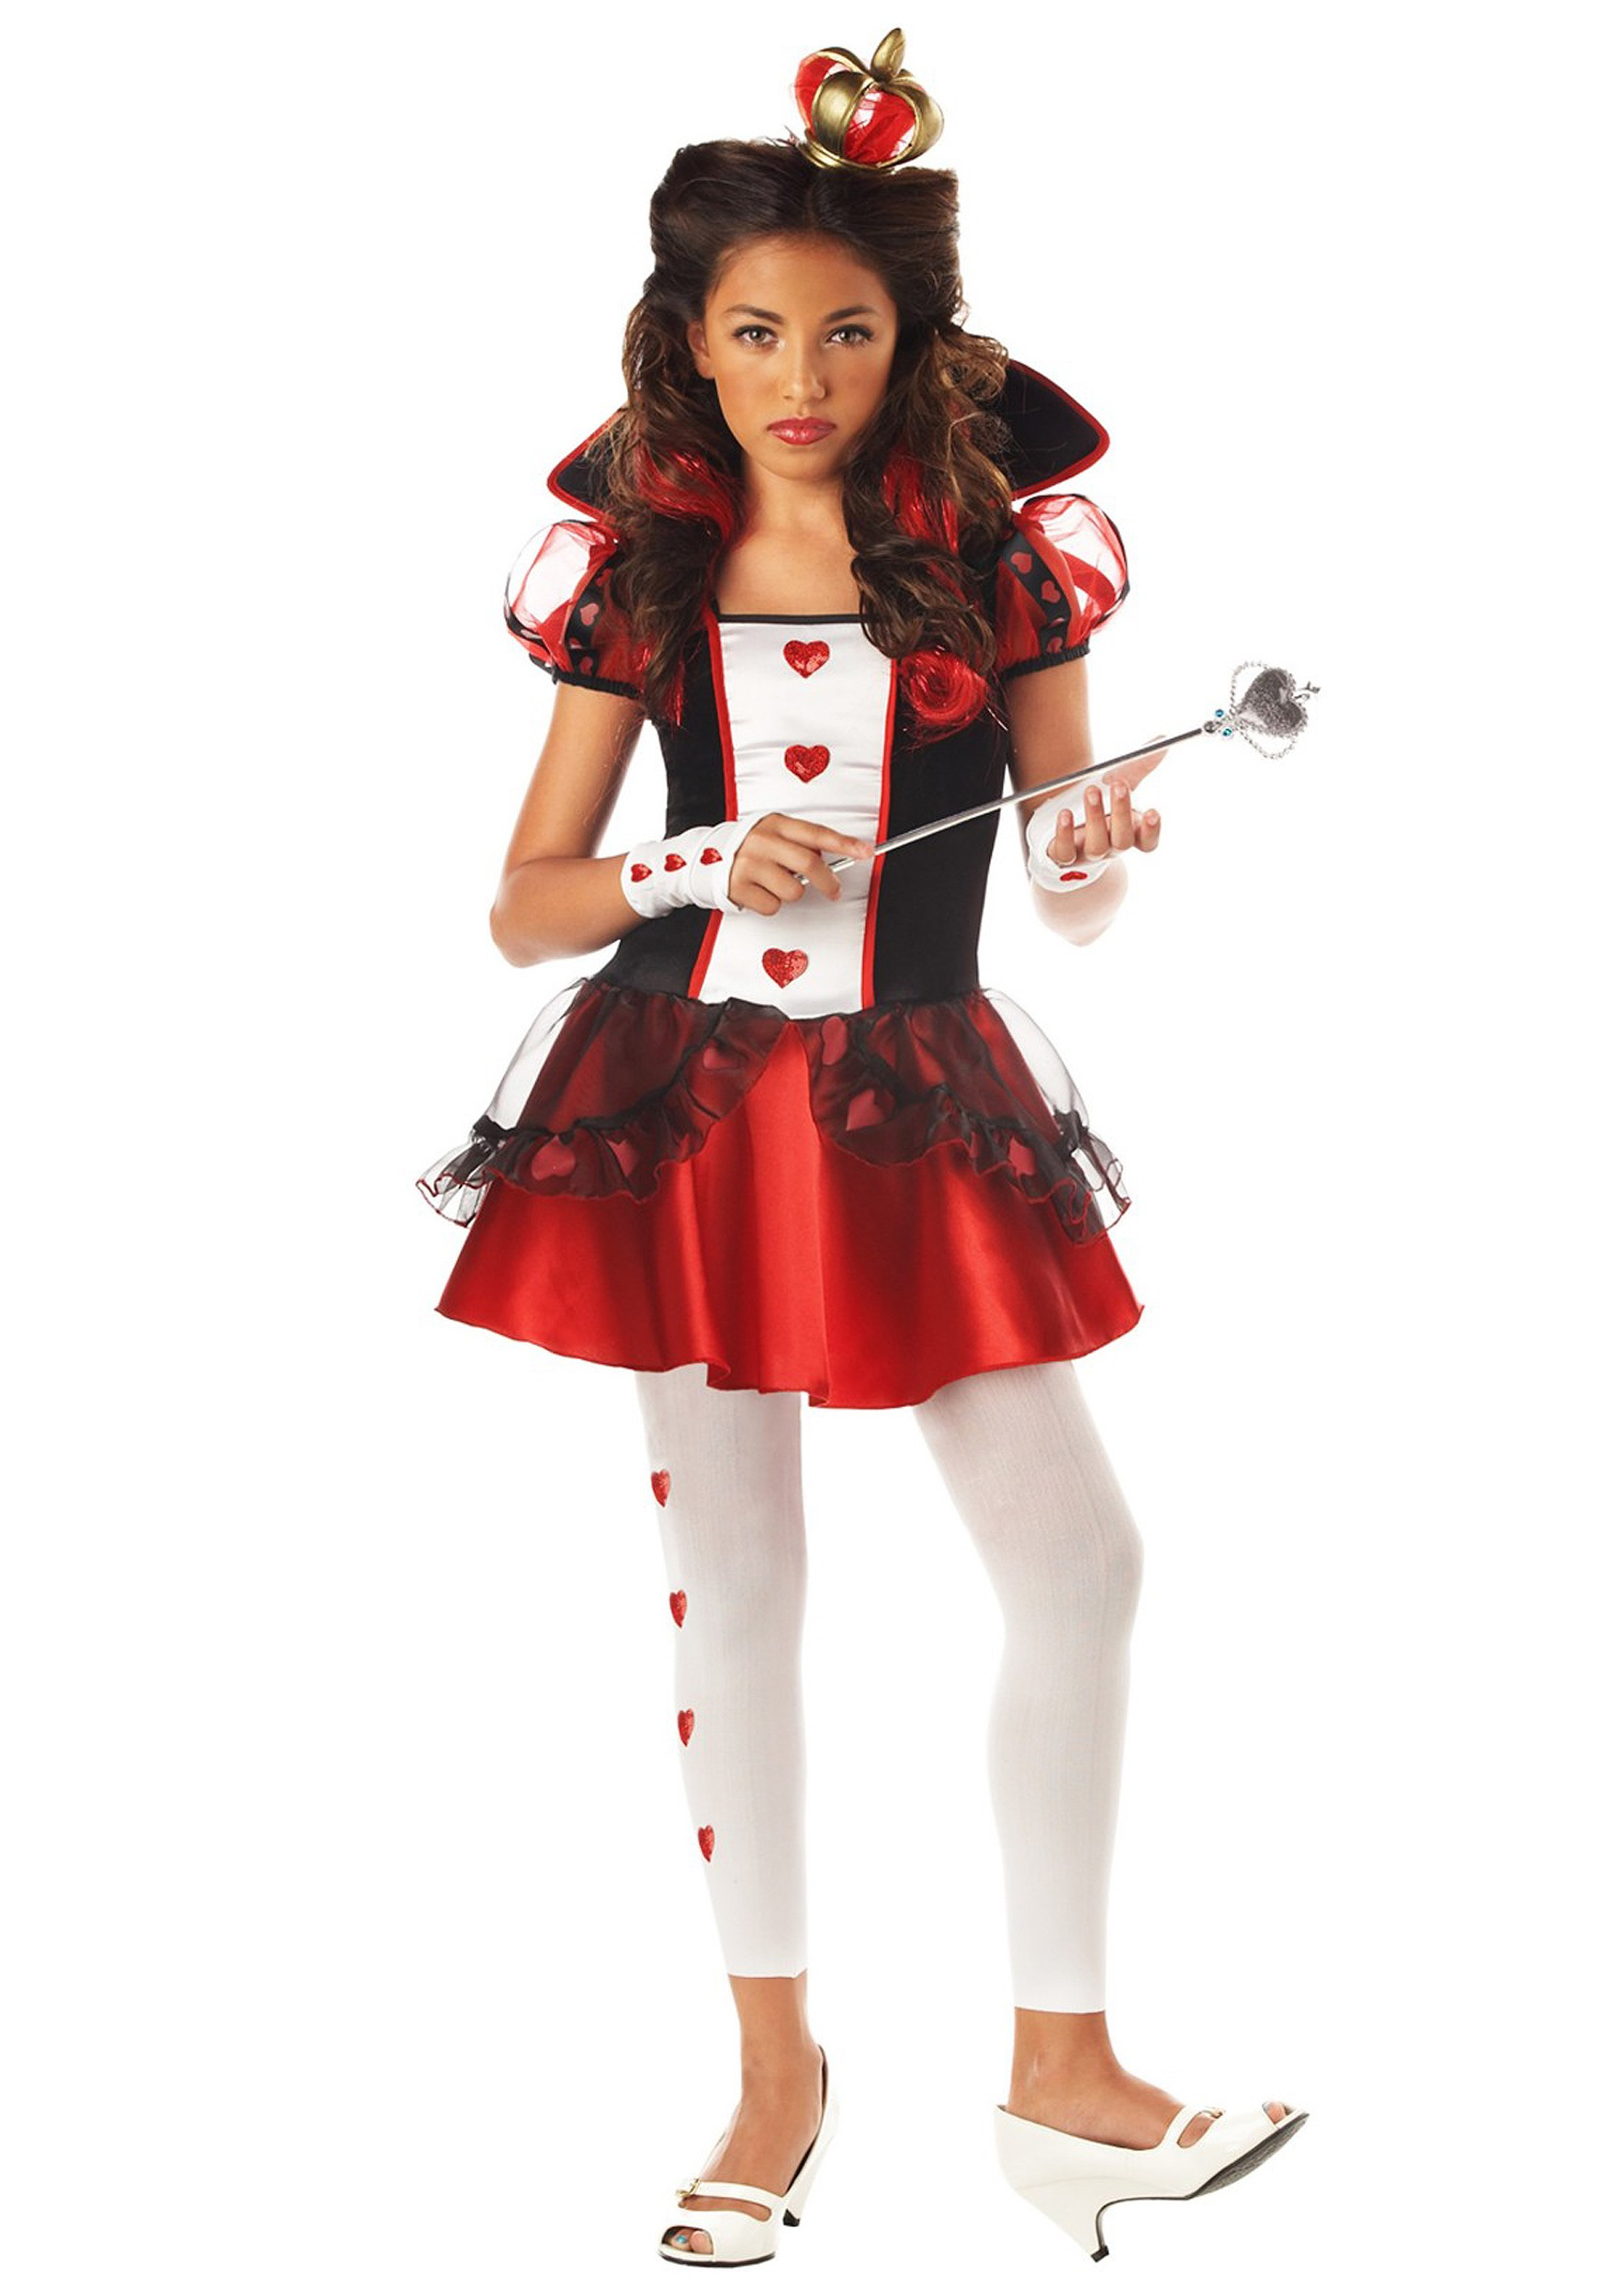 Teen Halloween Costume Ideas - Halloween Costumes for Teens